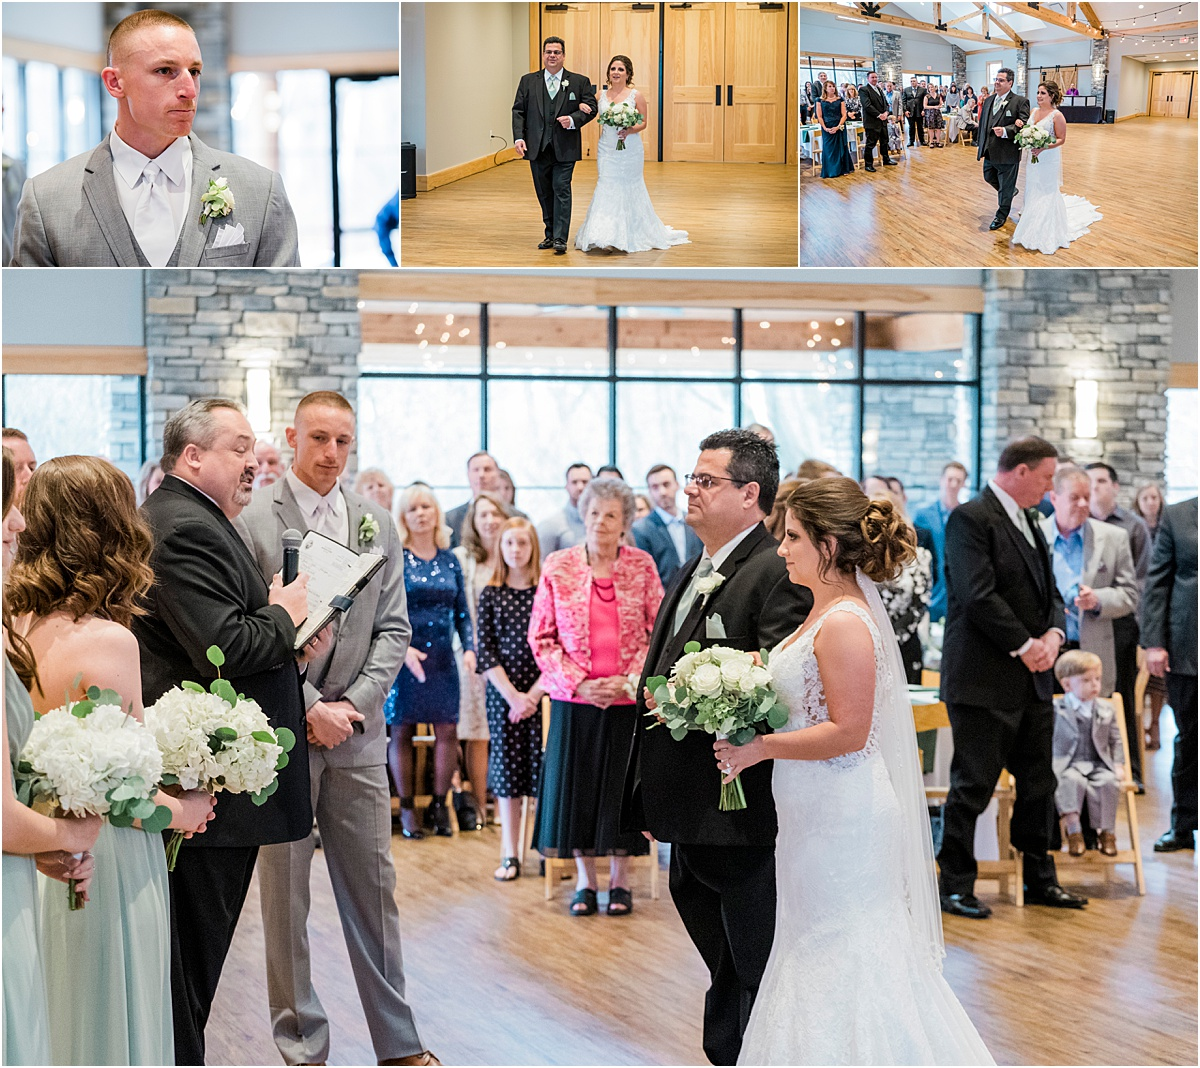 The-Sycamore-at-Mallow-Run-Wedding-Pictures-14.jpg